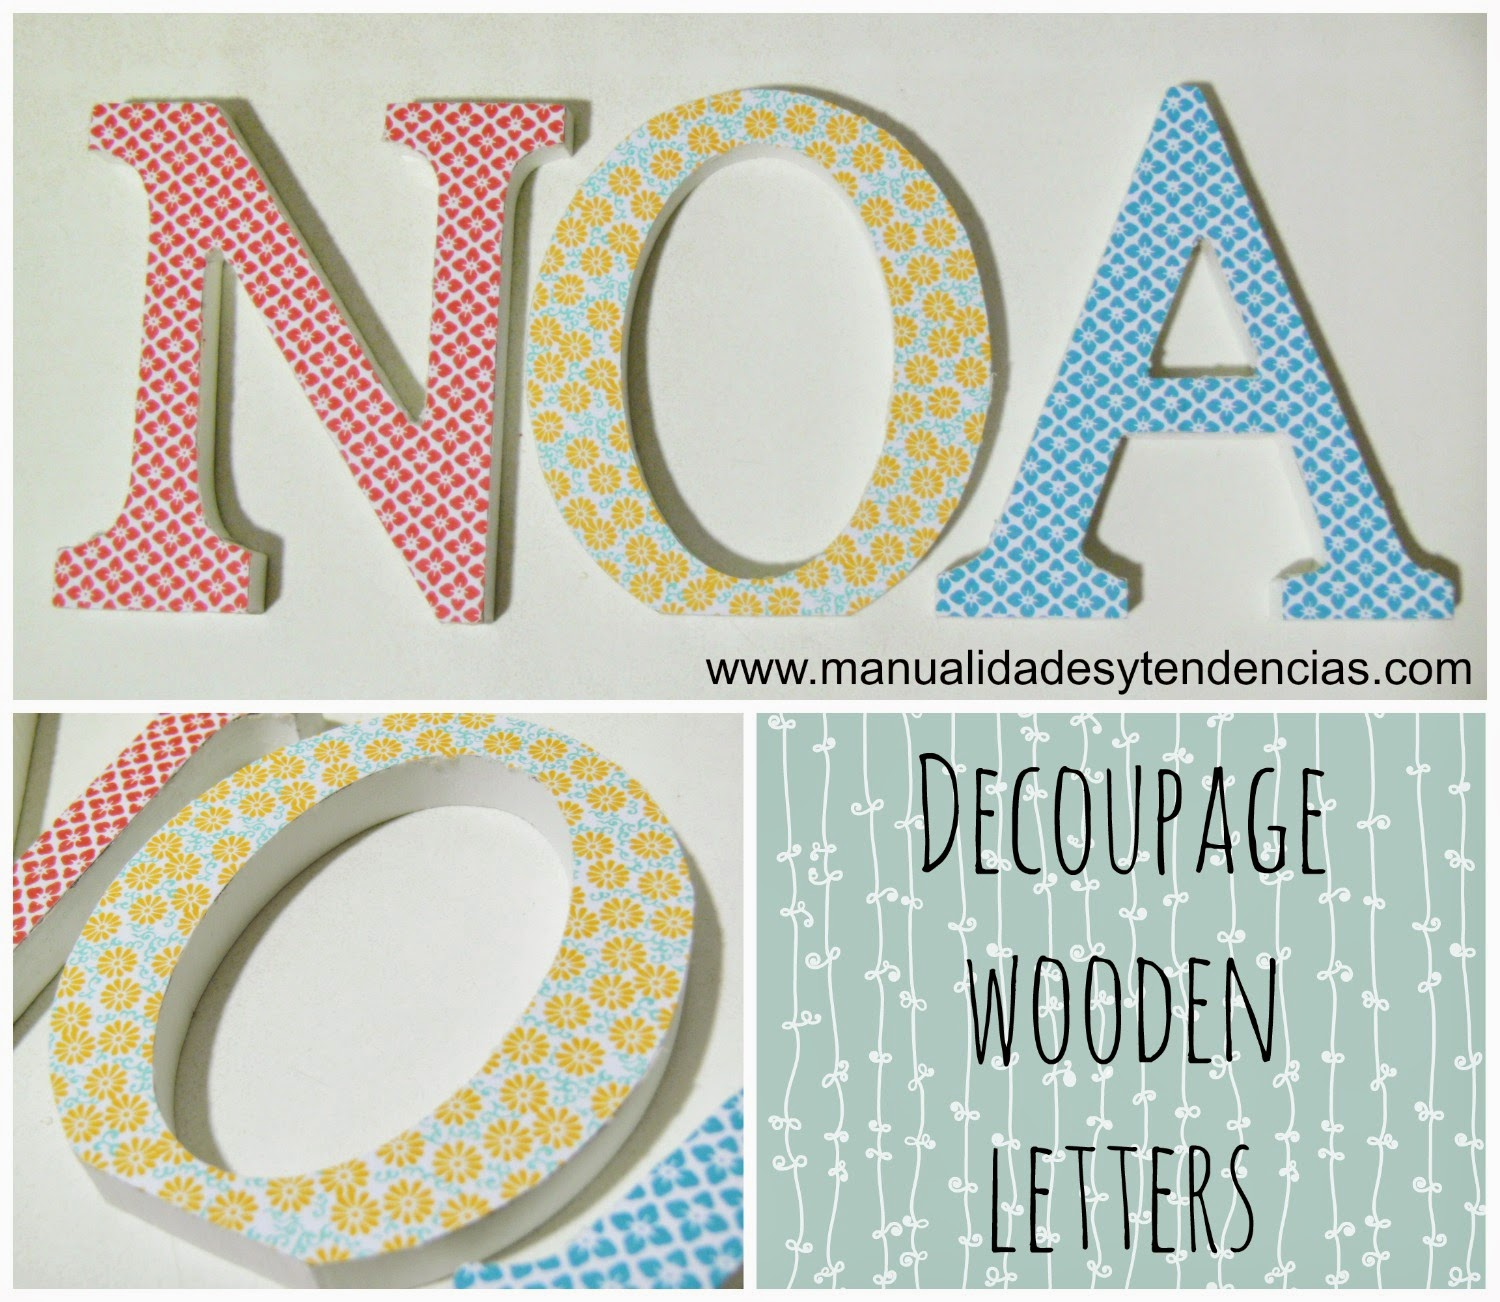 decoupage wooden letters tutorial